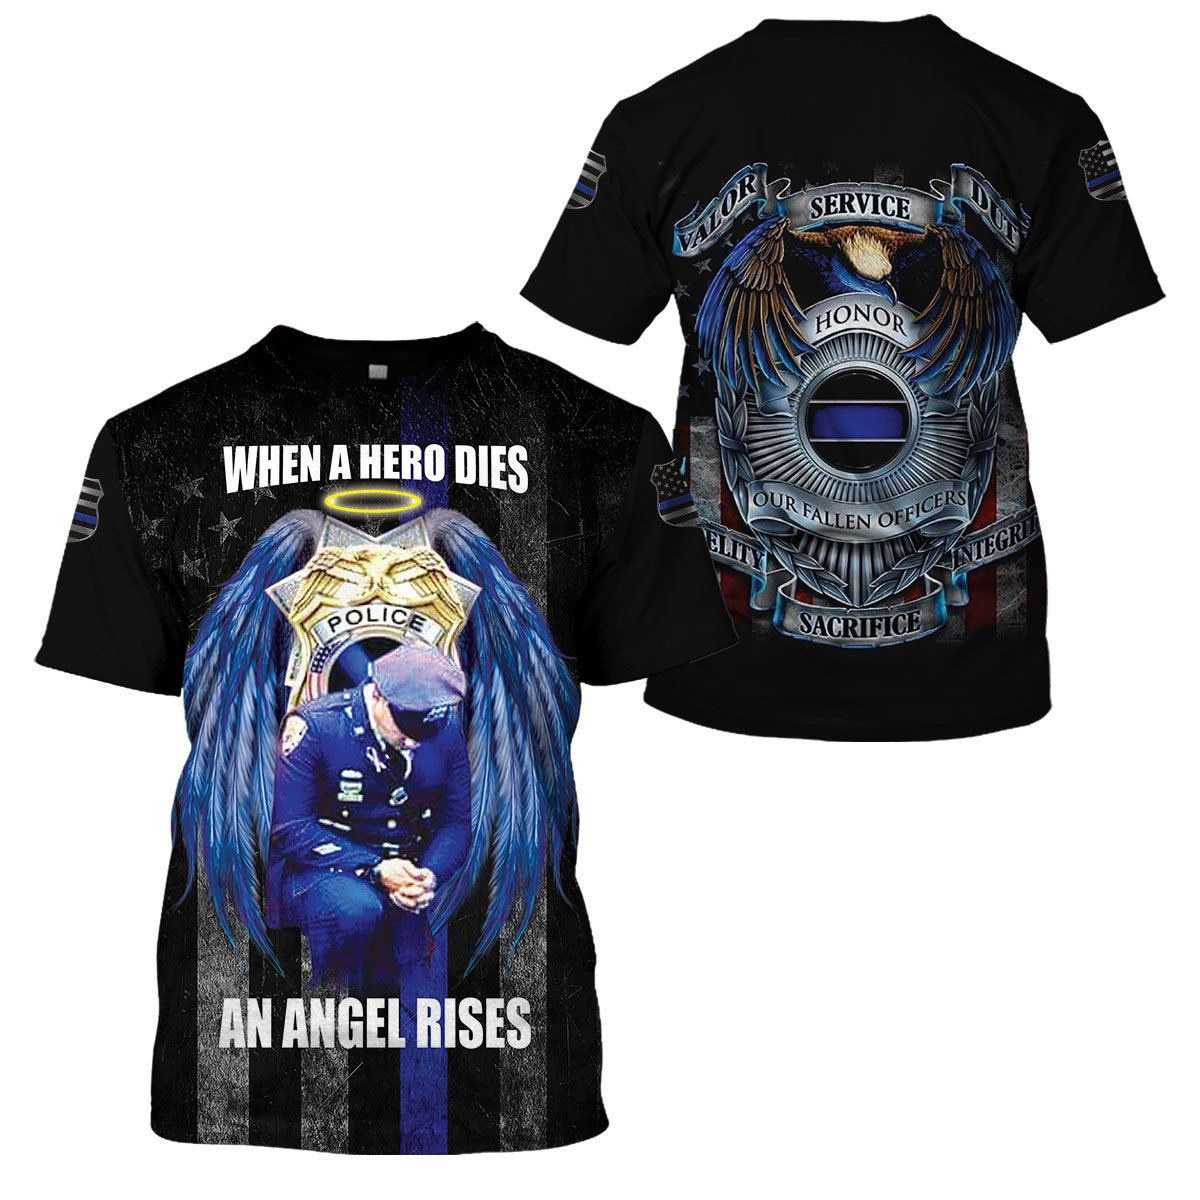 3D Thin Blue Line Apparel - When A Hero Dies An Angel Rises Limited Edition - 4zOutfitters Merchandise